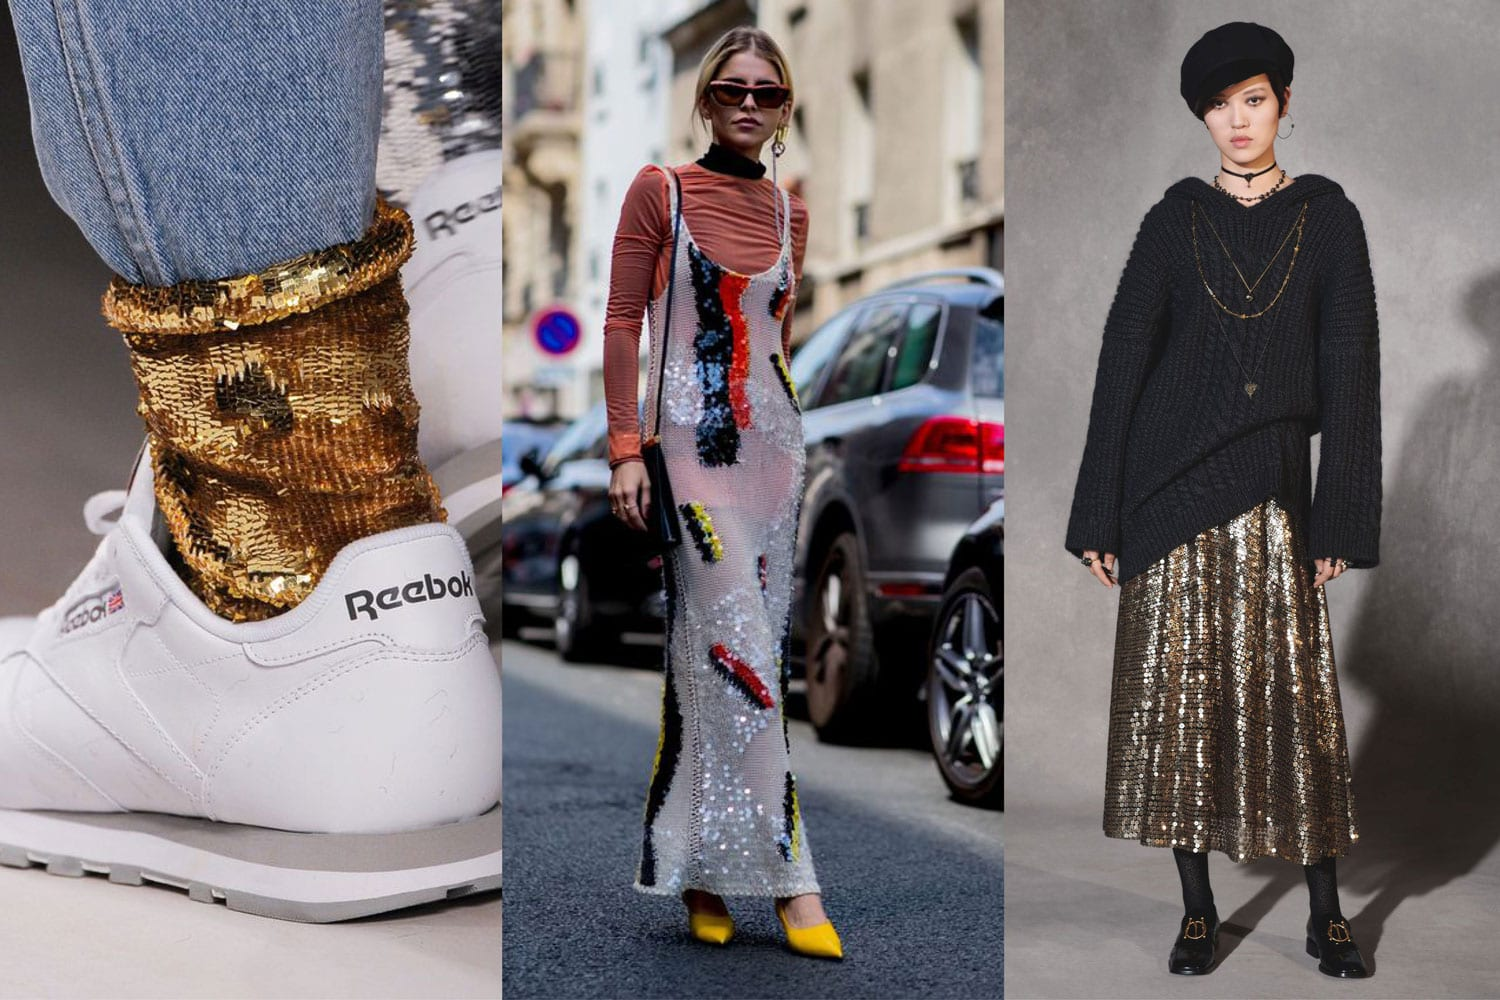 Top 4 fashion trends